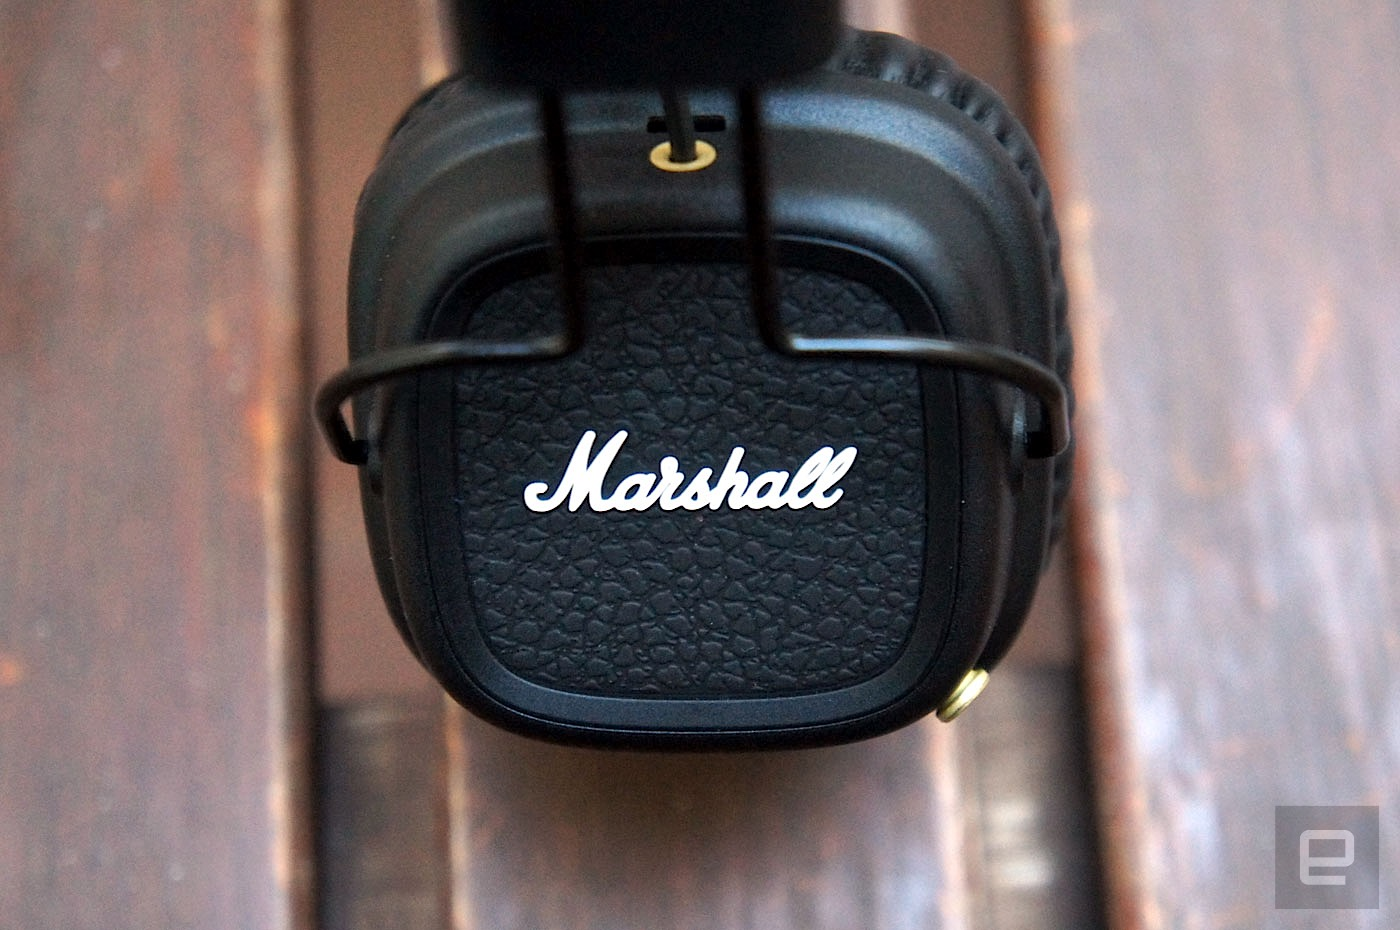 Marshall's wireless headphones rock all night (and day) long